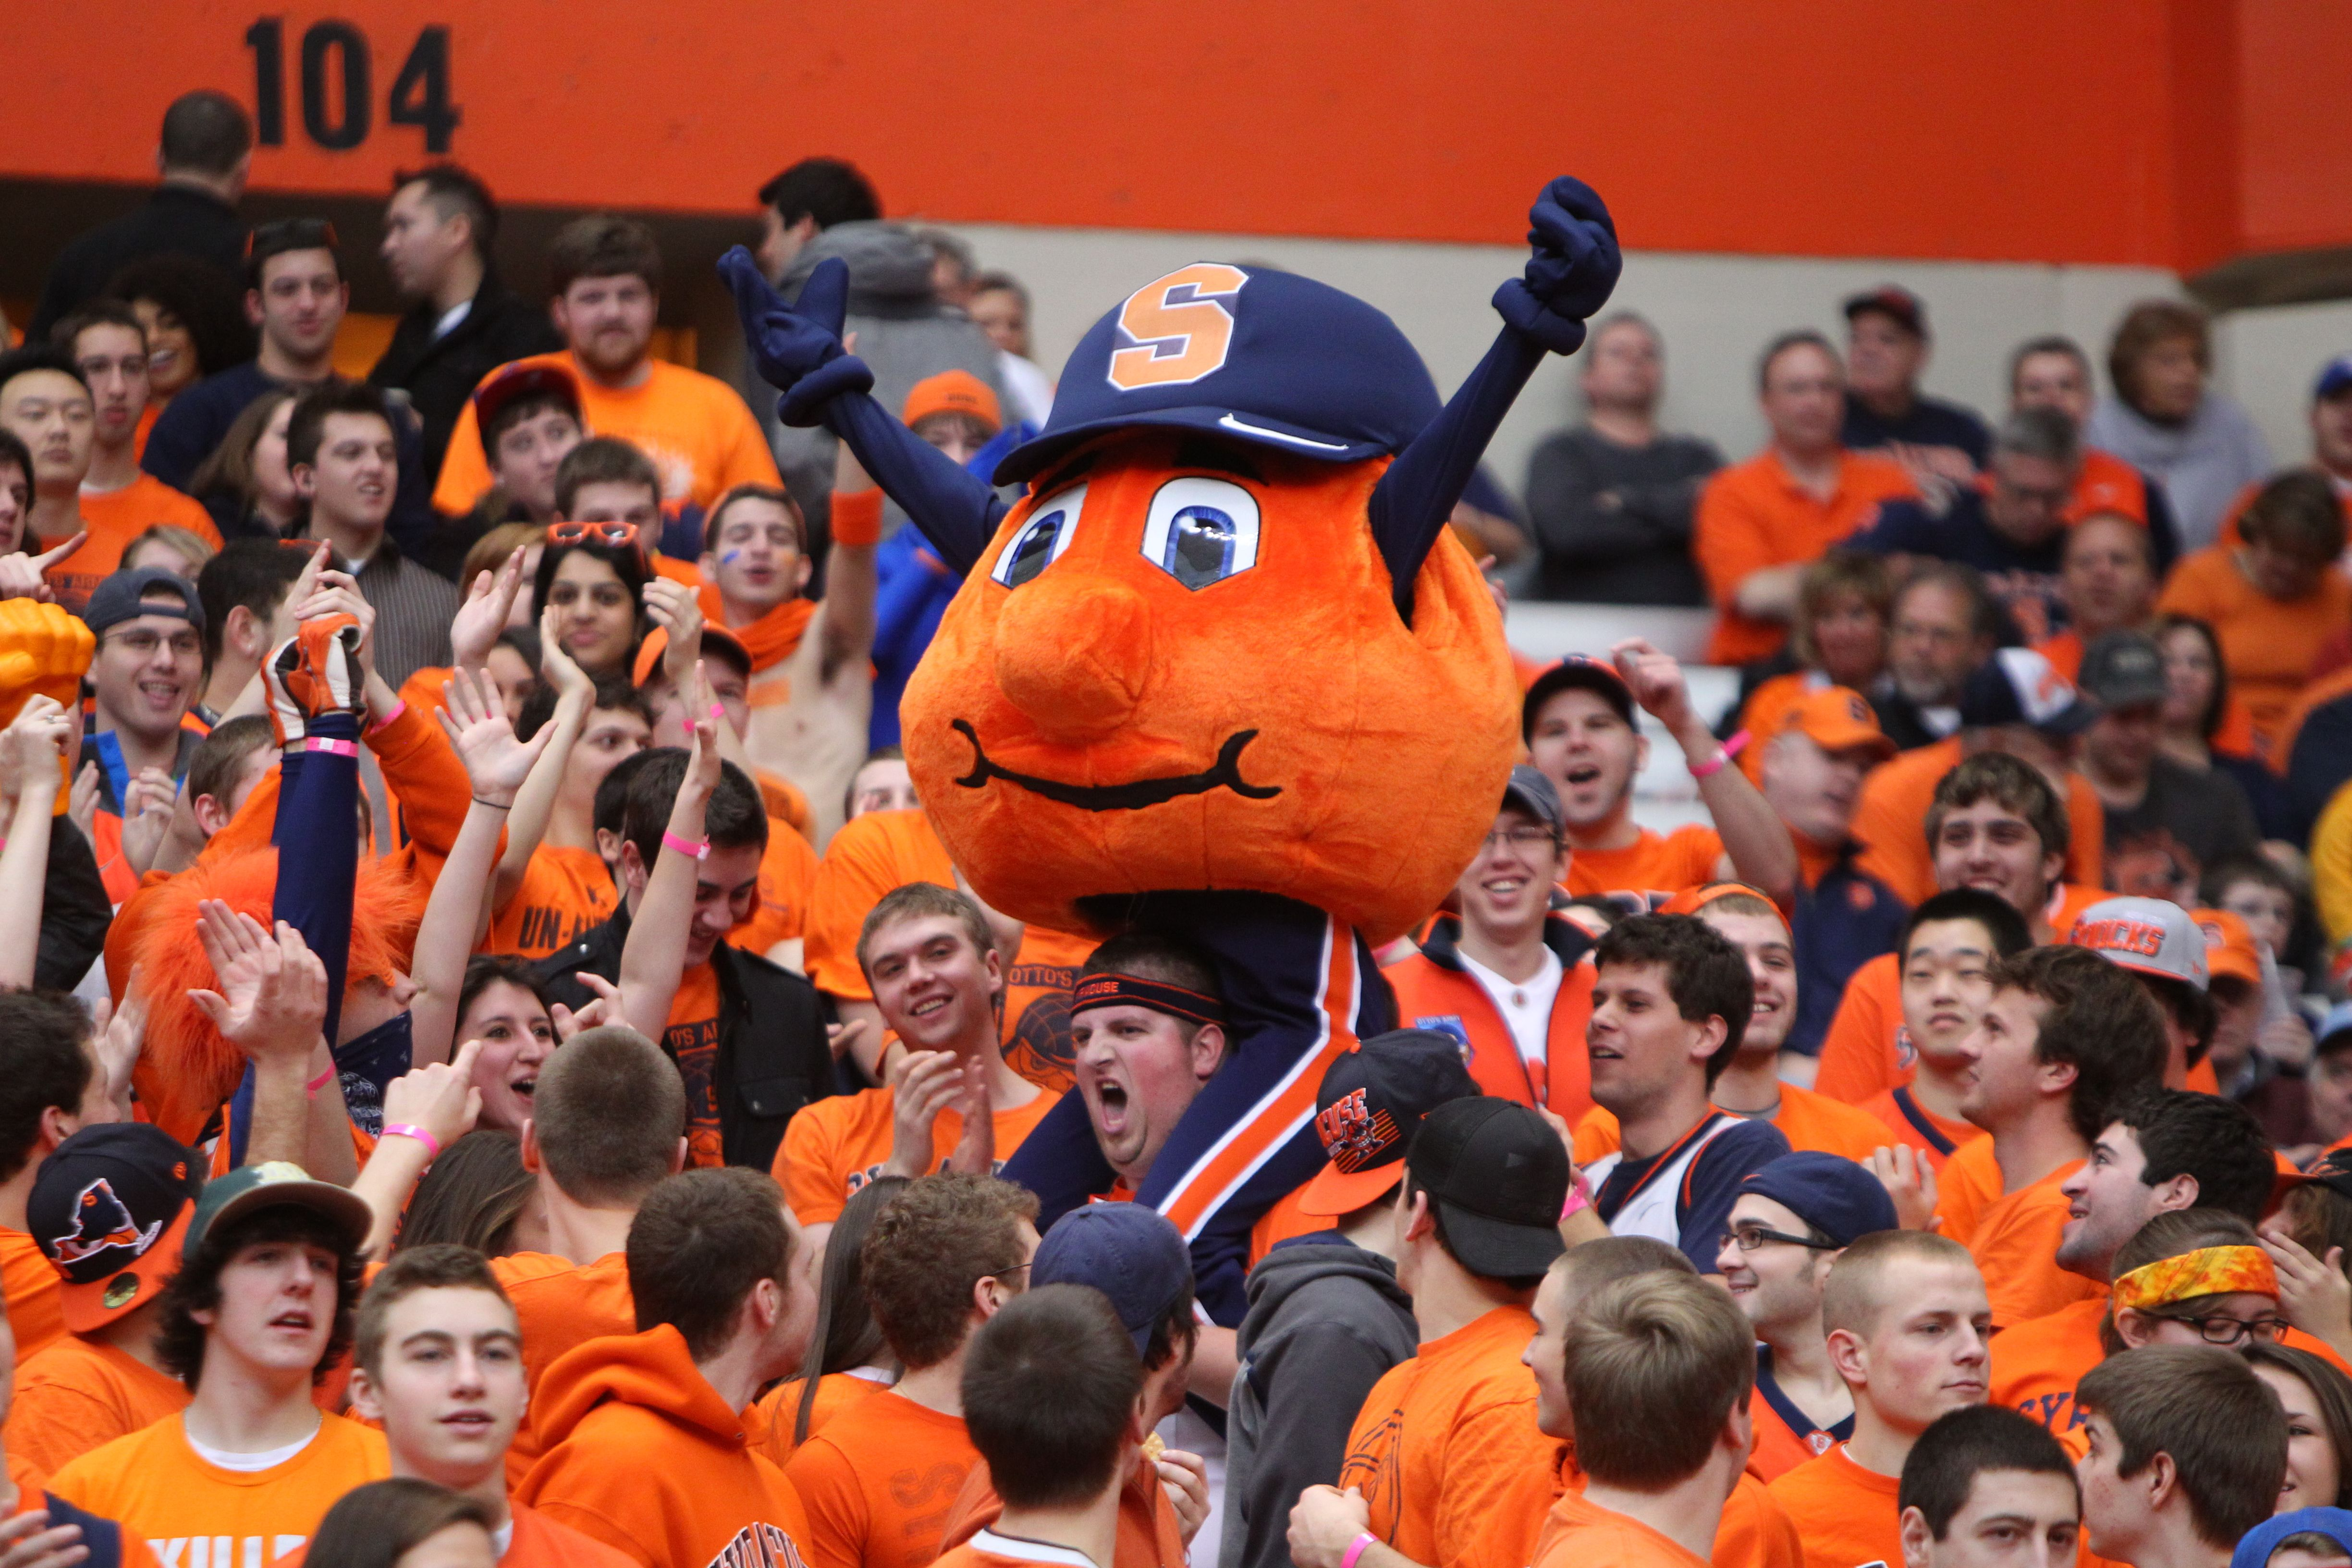 I'M IN THIS PICTURE AND SO ARE MY FRIENDS! Syracuse